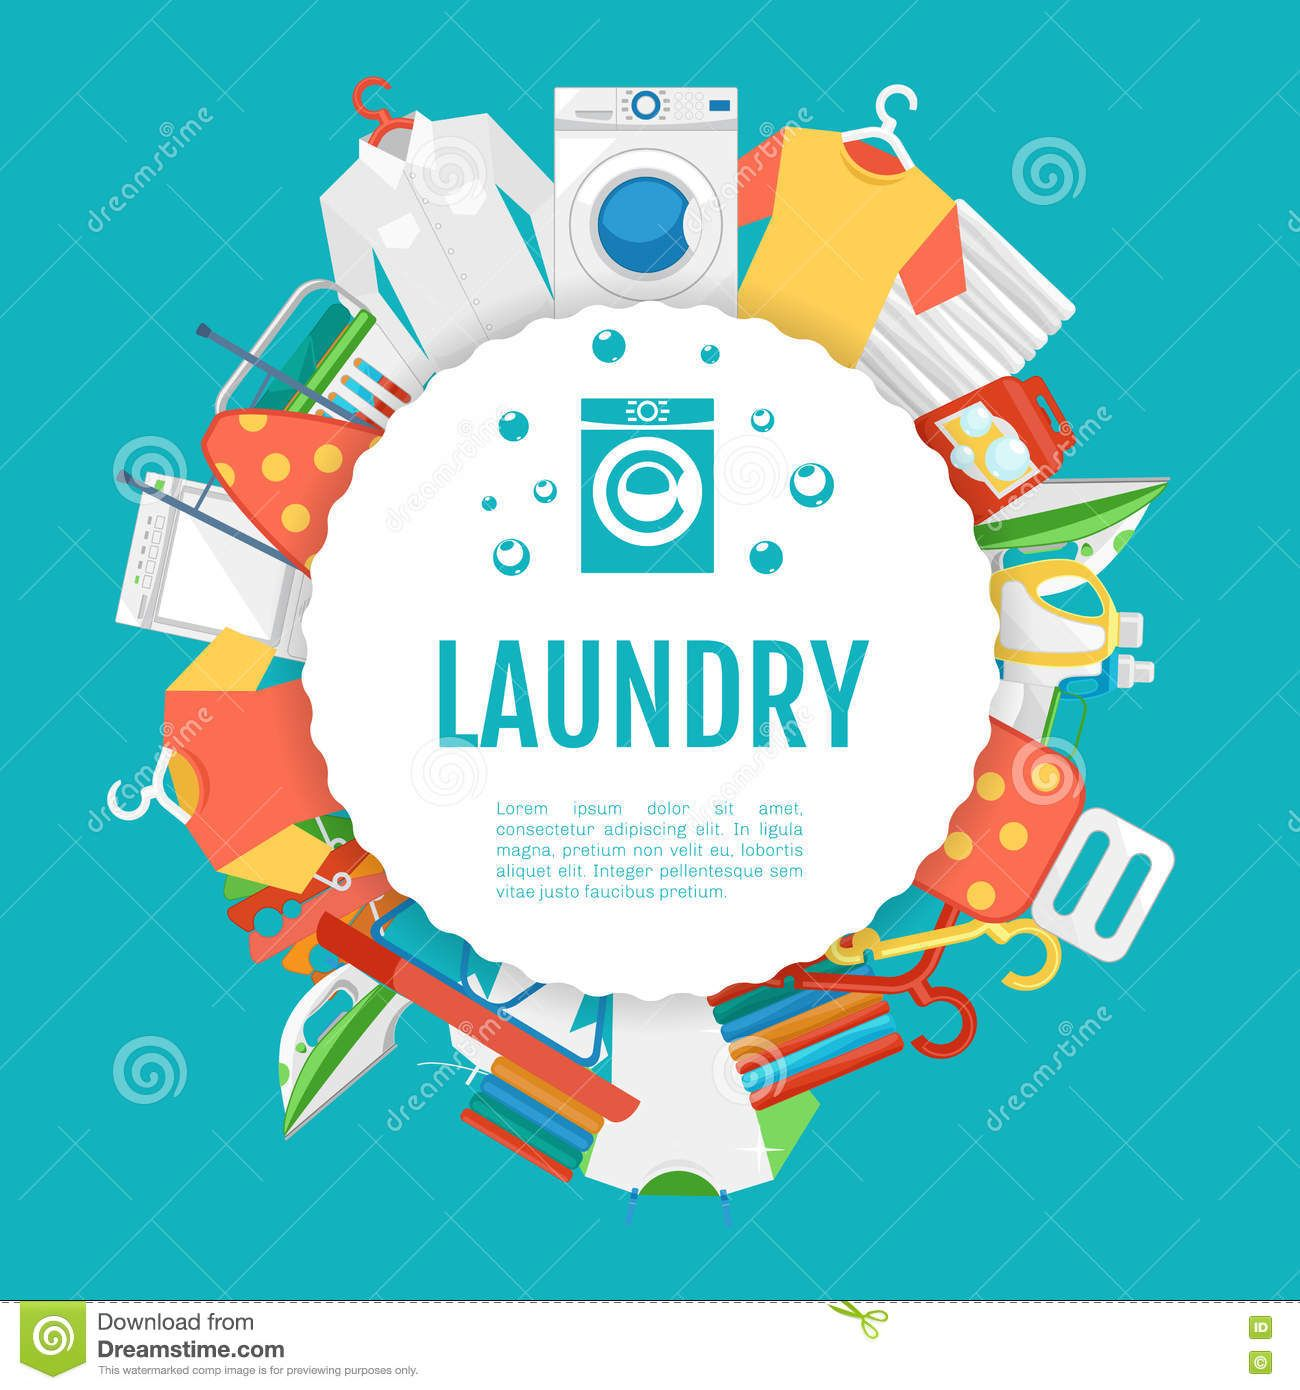 Laundry Service Poster Design Icons Circle Label With Text